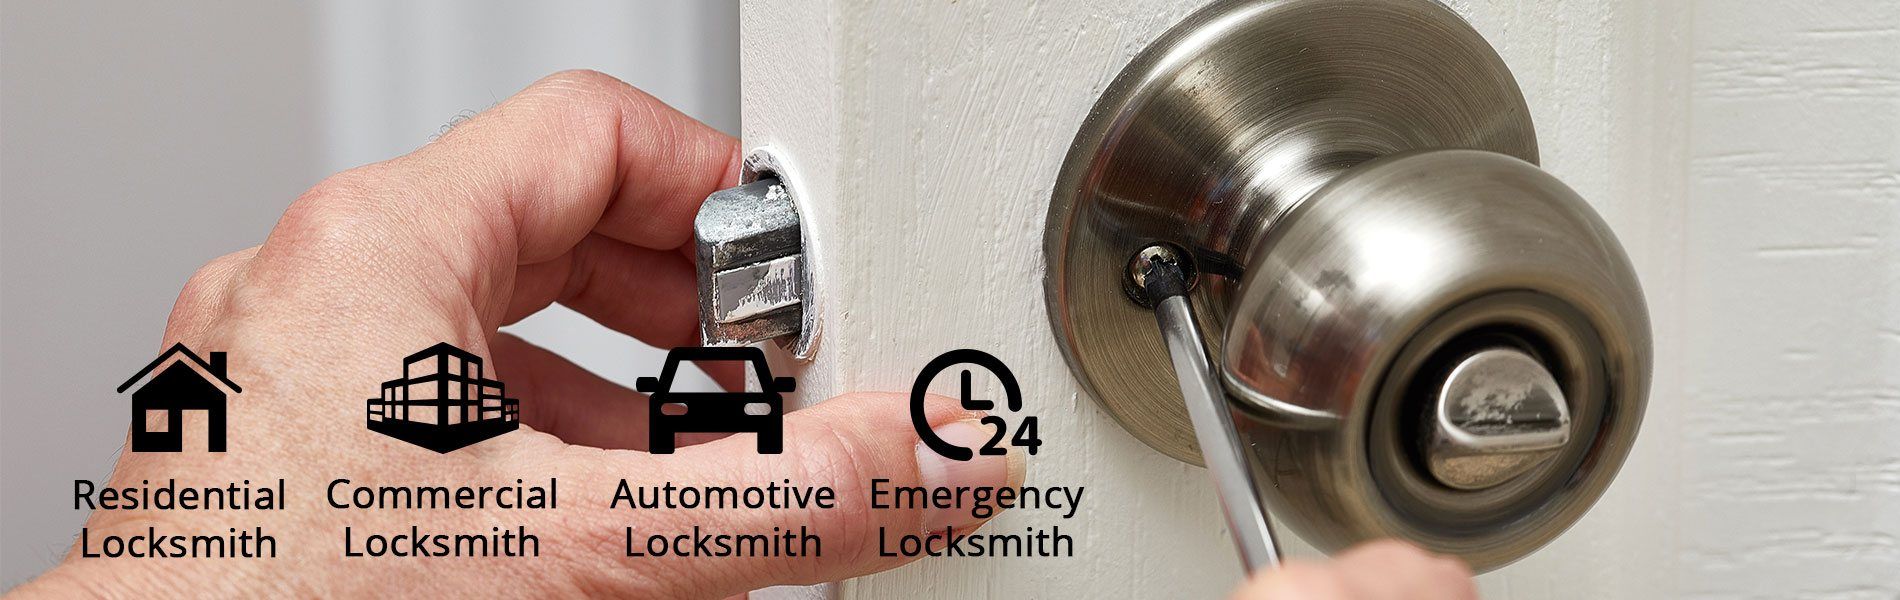 Lock Locksmith Services Wilberforce, OH 937-388-4009